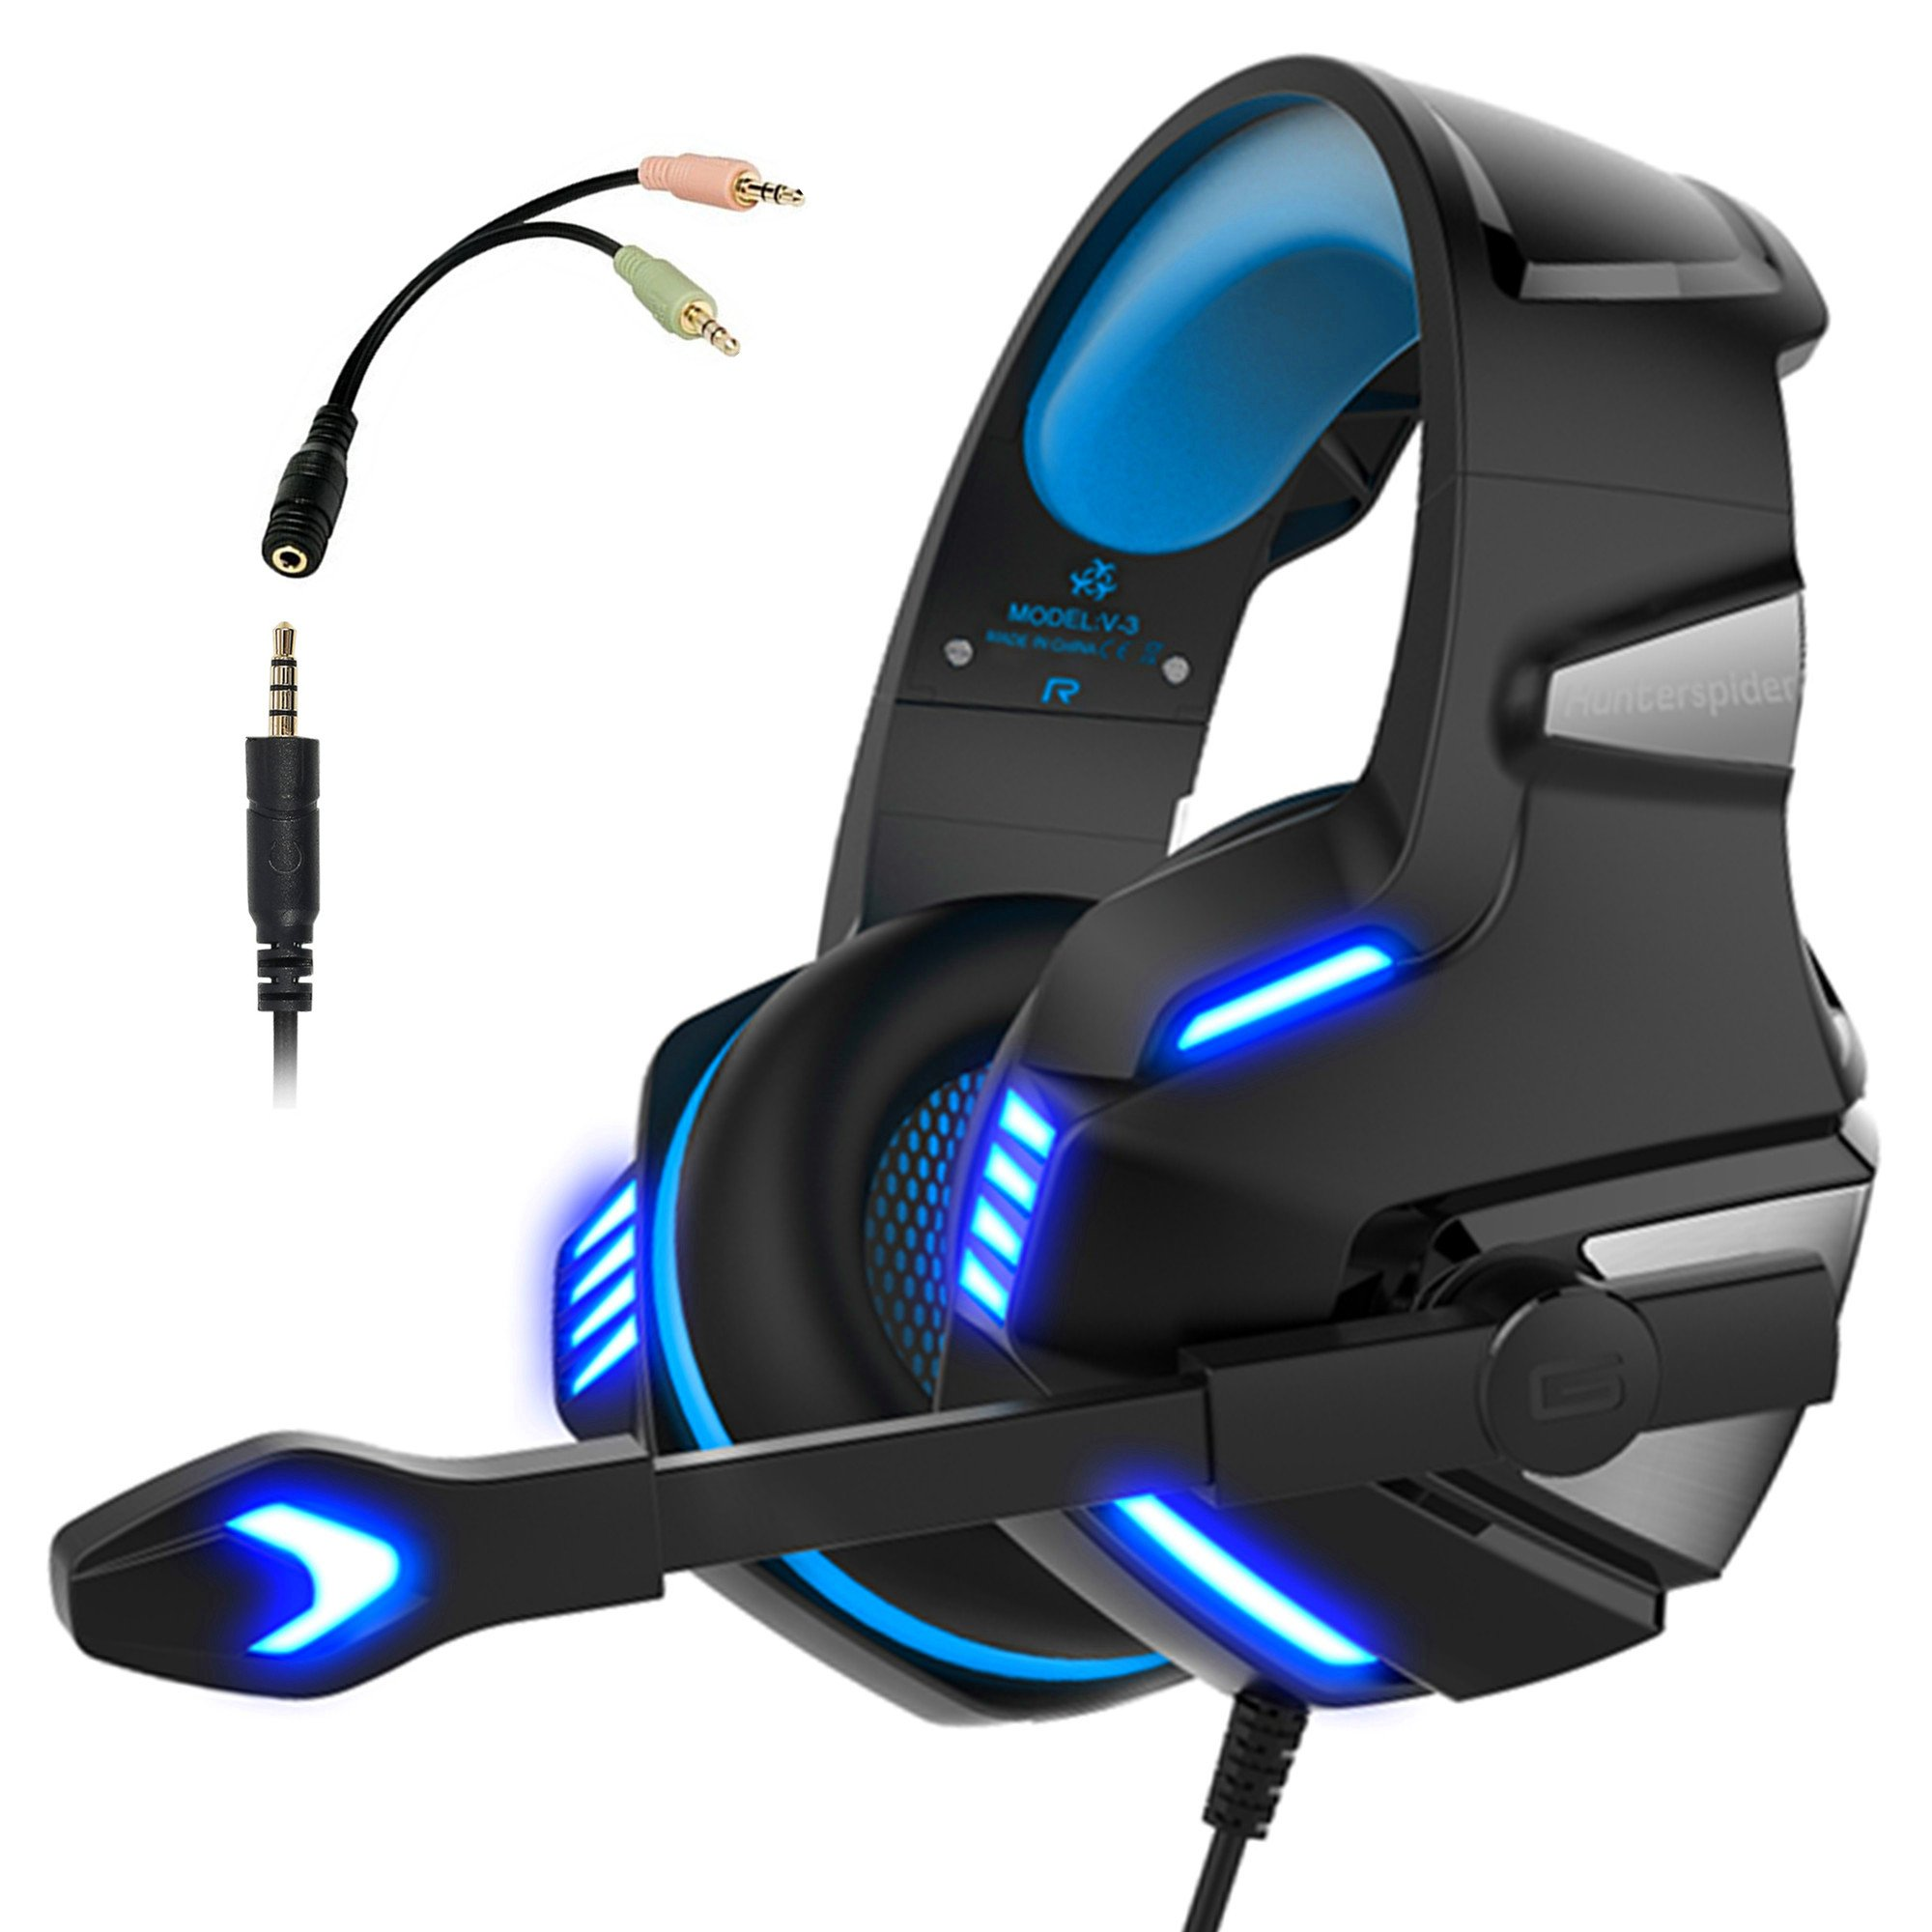 Gaming Headset for PS4 Xbox One, Micolindun Over Ear Gaming Headphones with Mic Stereo Surround Noise Reduction LED Lights Volume Control for Laptop, PC, Mac, iPad, Smartphones by Micolindun